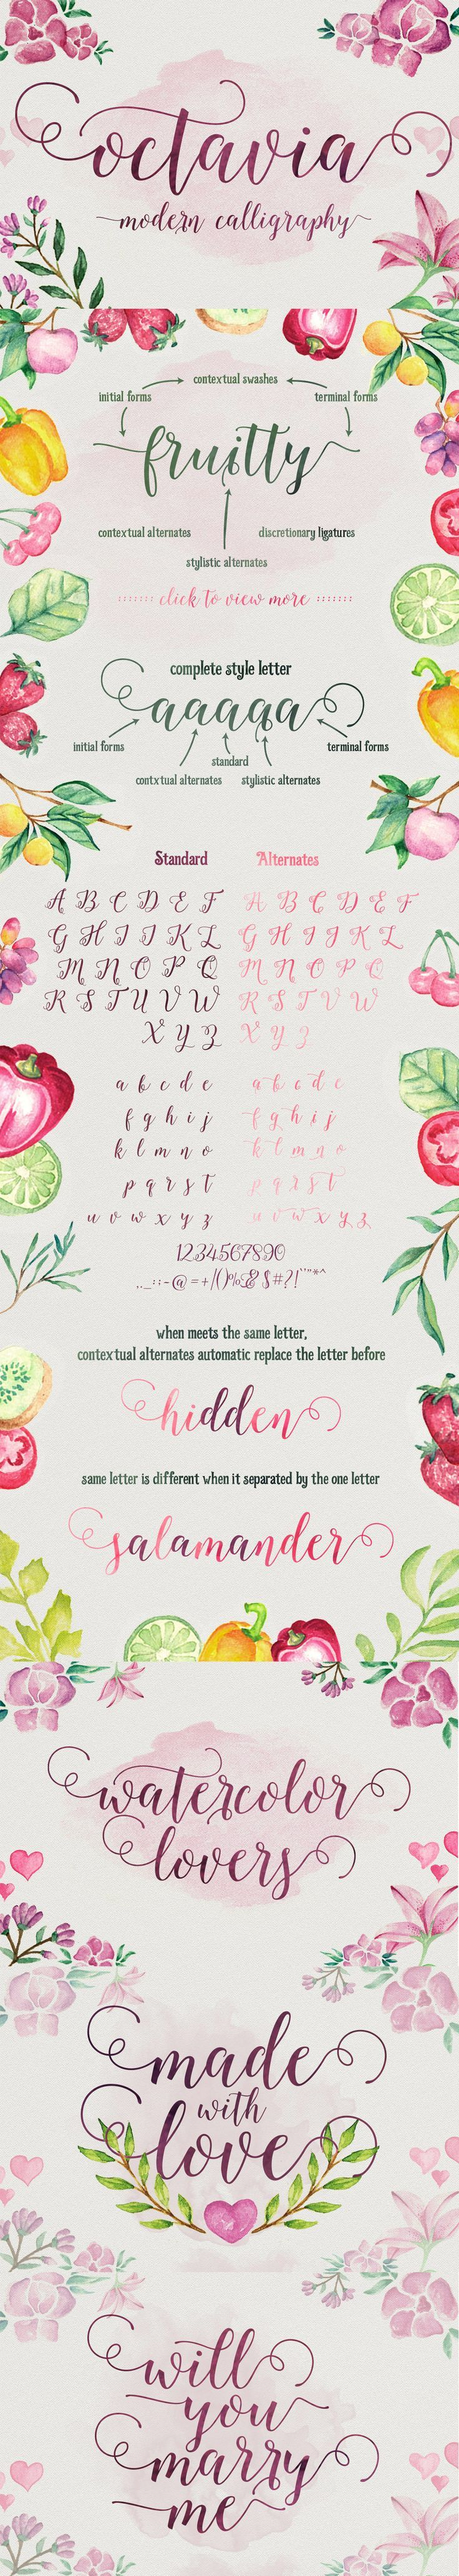 The Essential, Creative Design Arsenal (1000s of Best-Selling Resources) Just $29 - Octavia Script: